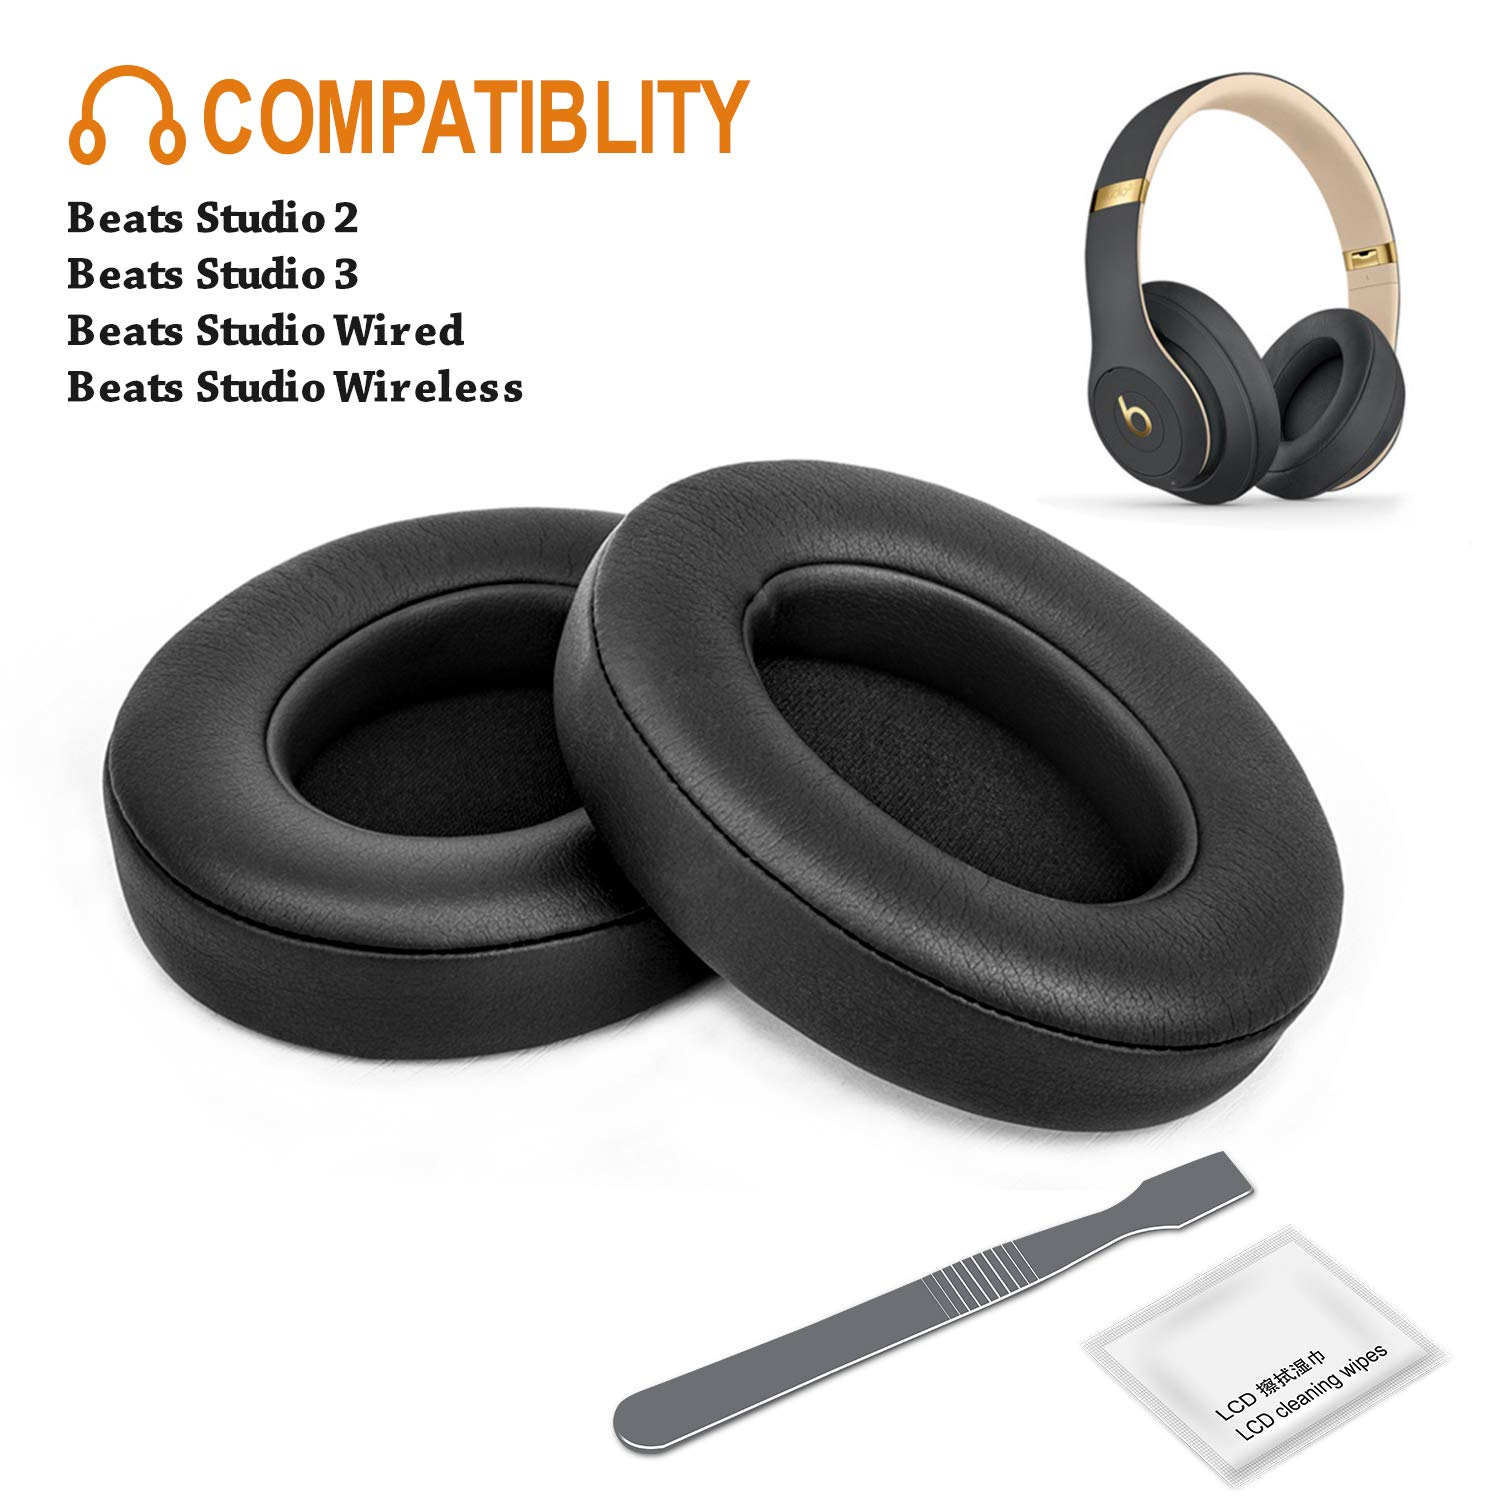 Almohadillas Beats Studio 2 Wired/wireless Y Beats Studio 3